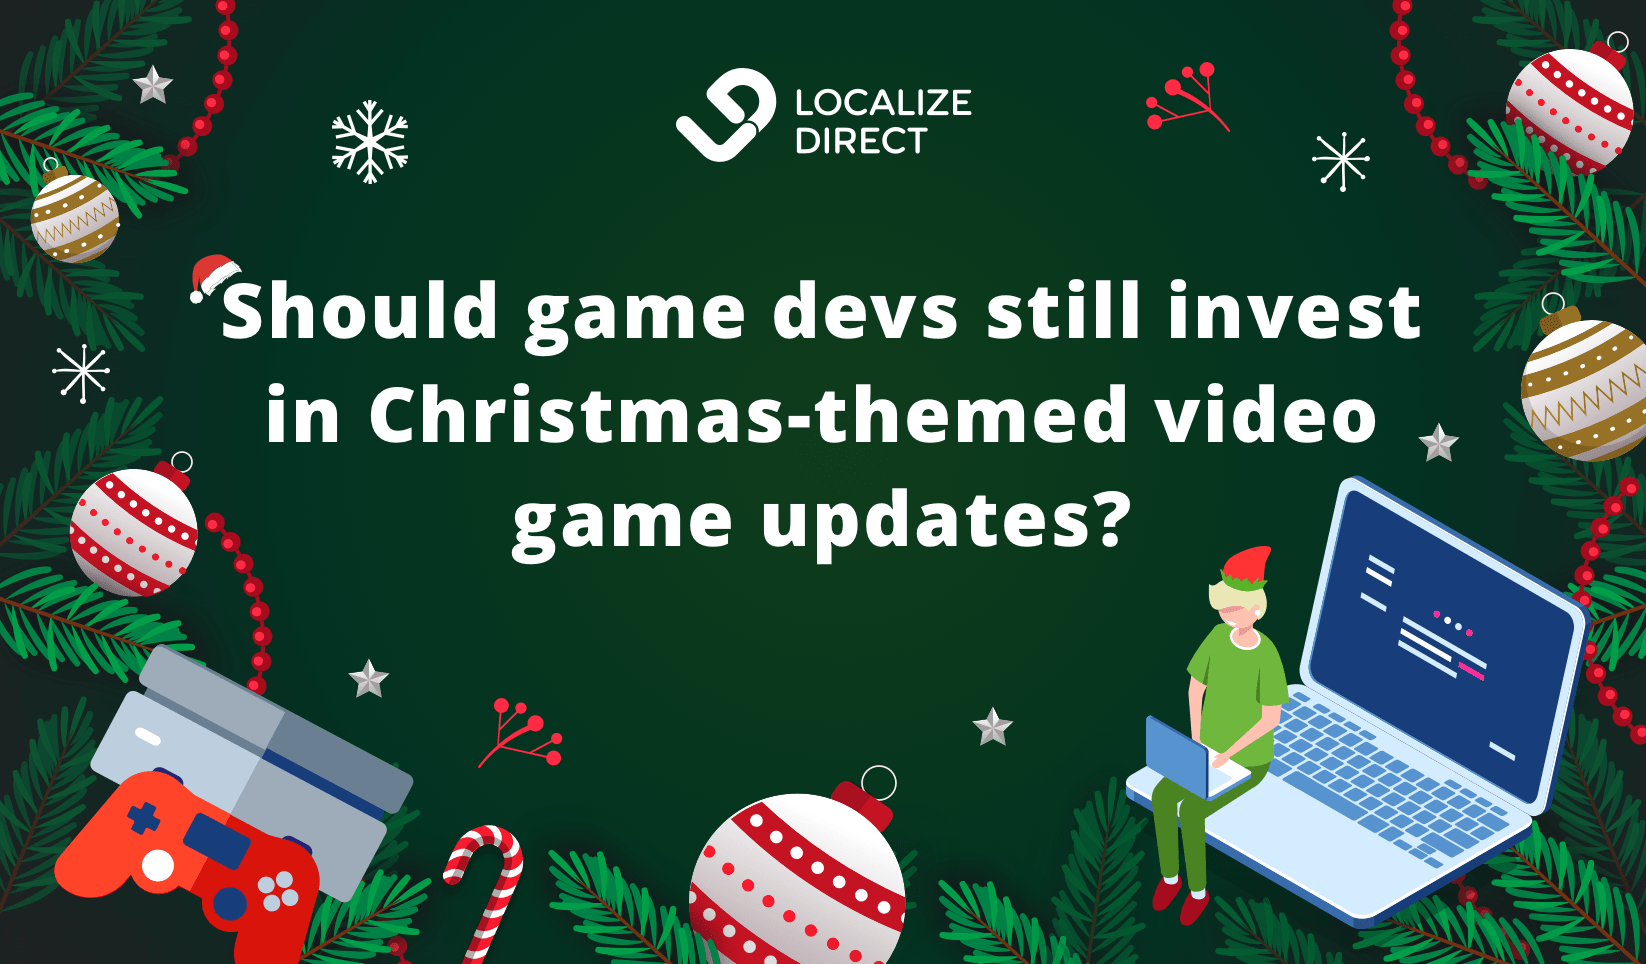 Should Game Devs Still Invest In Christmas-Themed Video Game Updates?